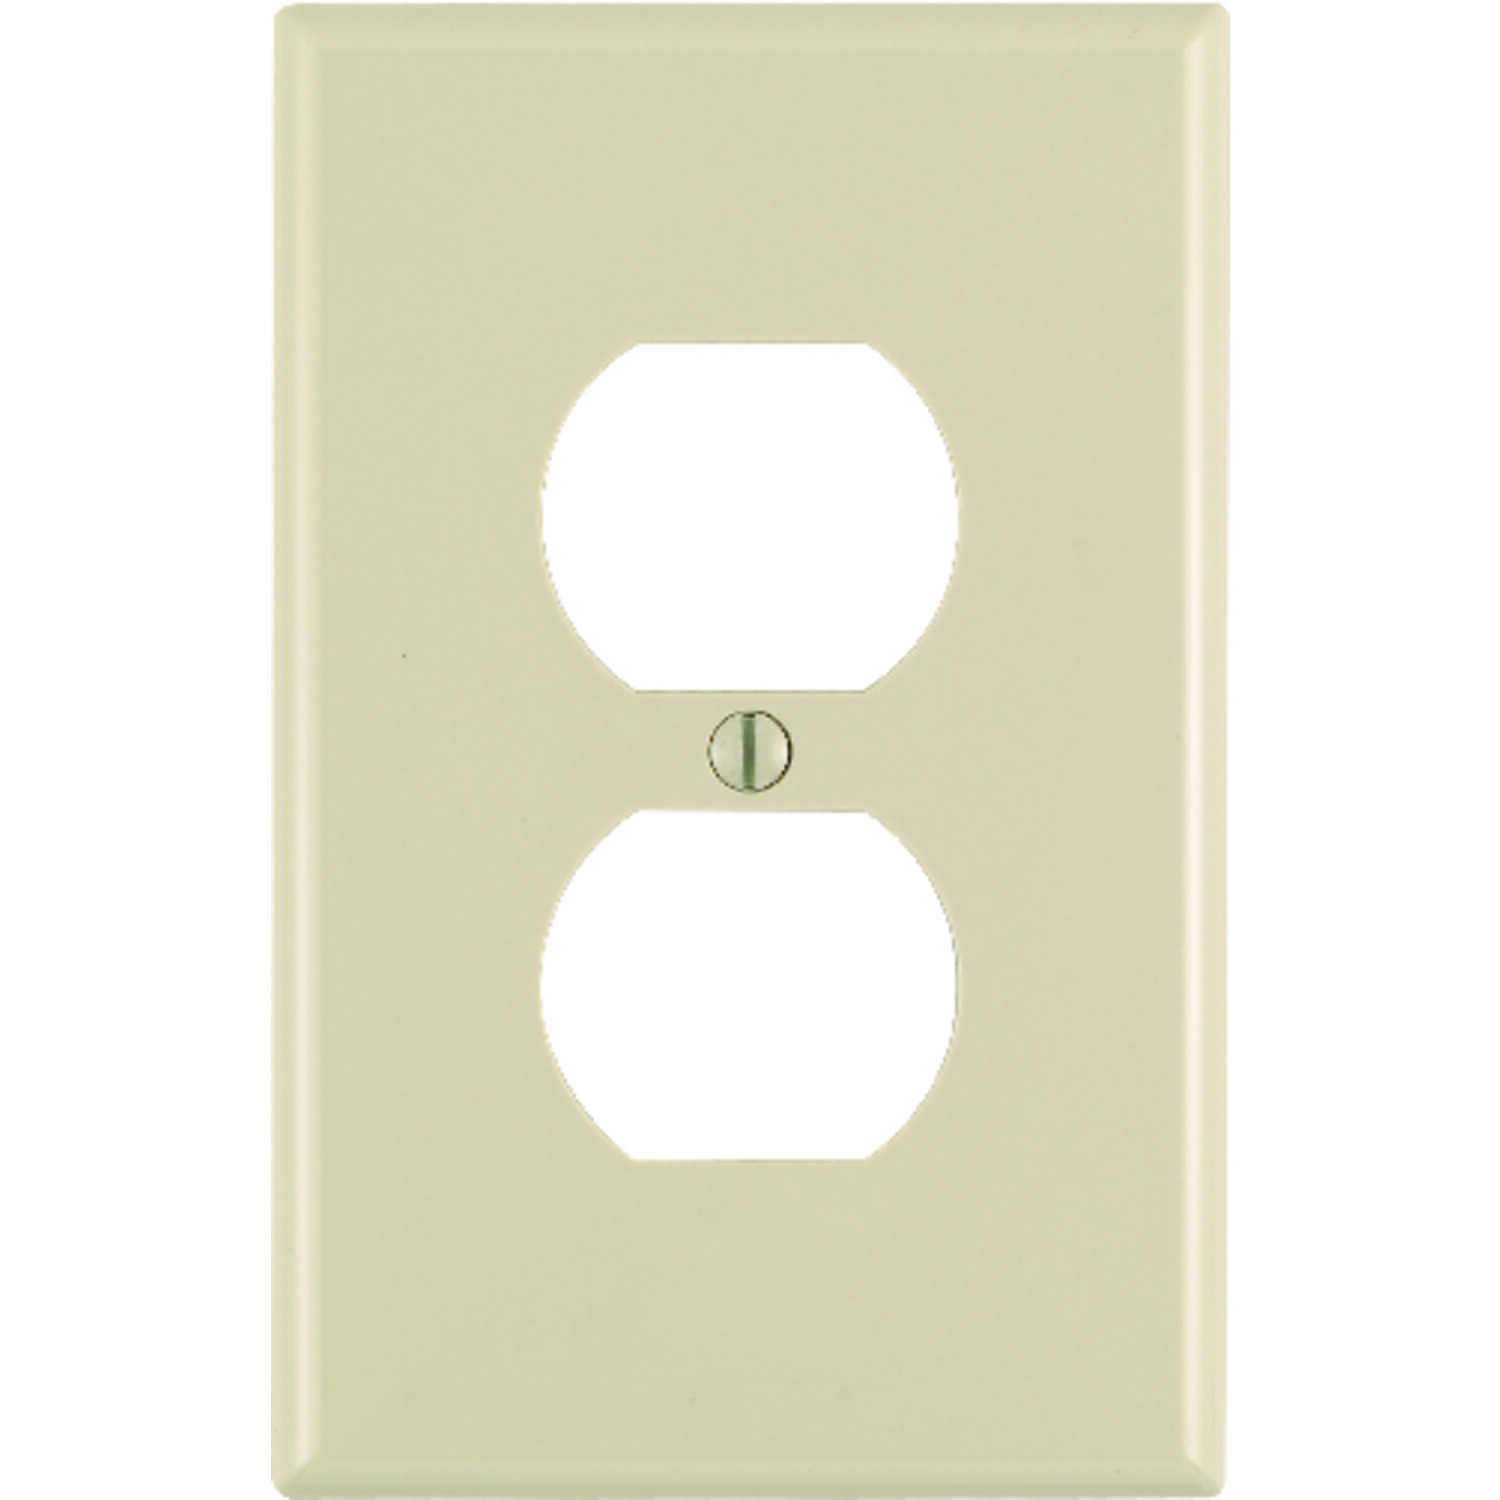 Leviton  Midway  Ivory  1 gang Nylon  Wall Plate  Duplex Outlet  1 pk